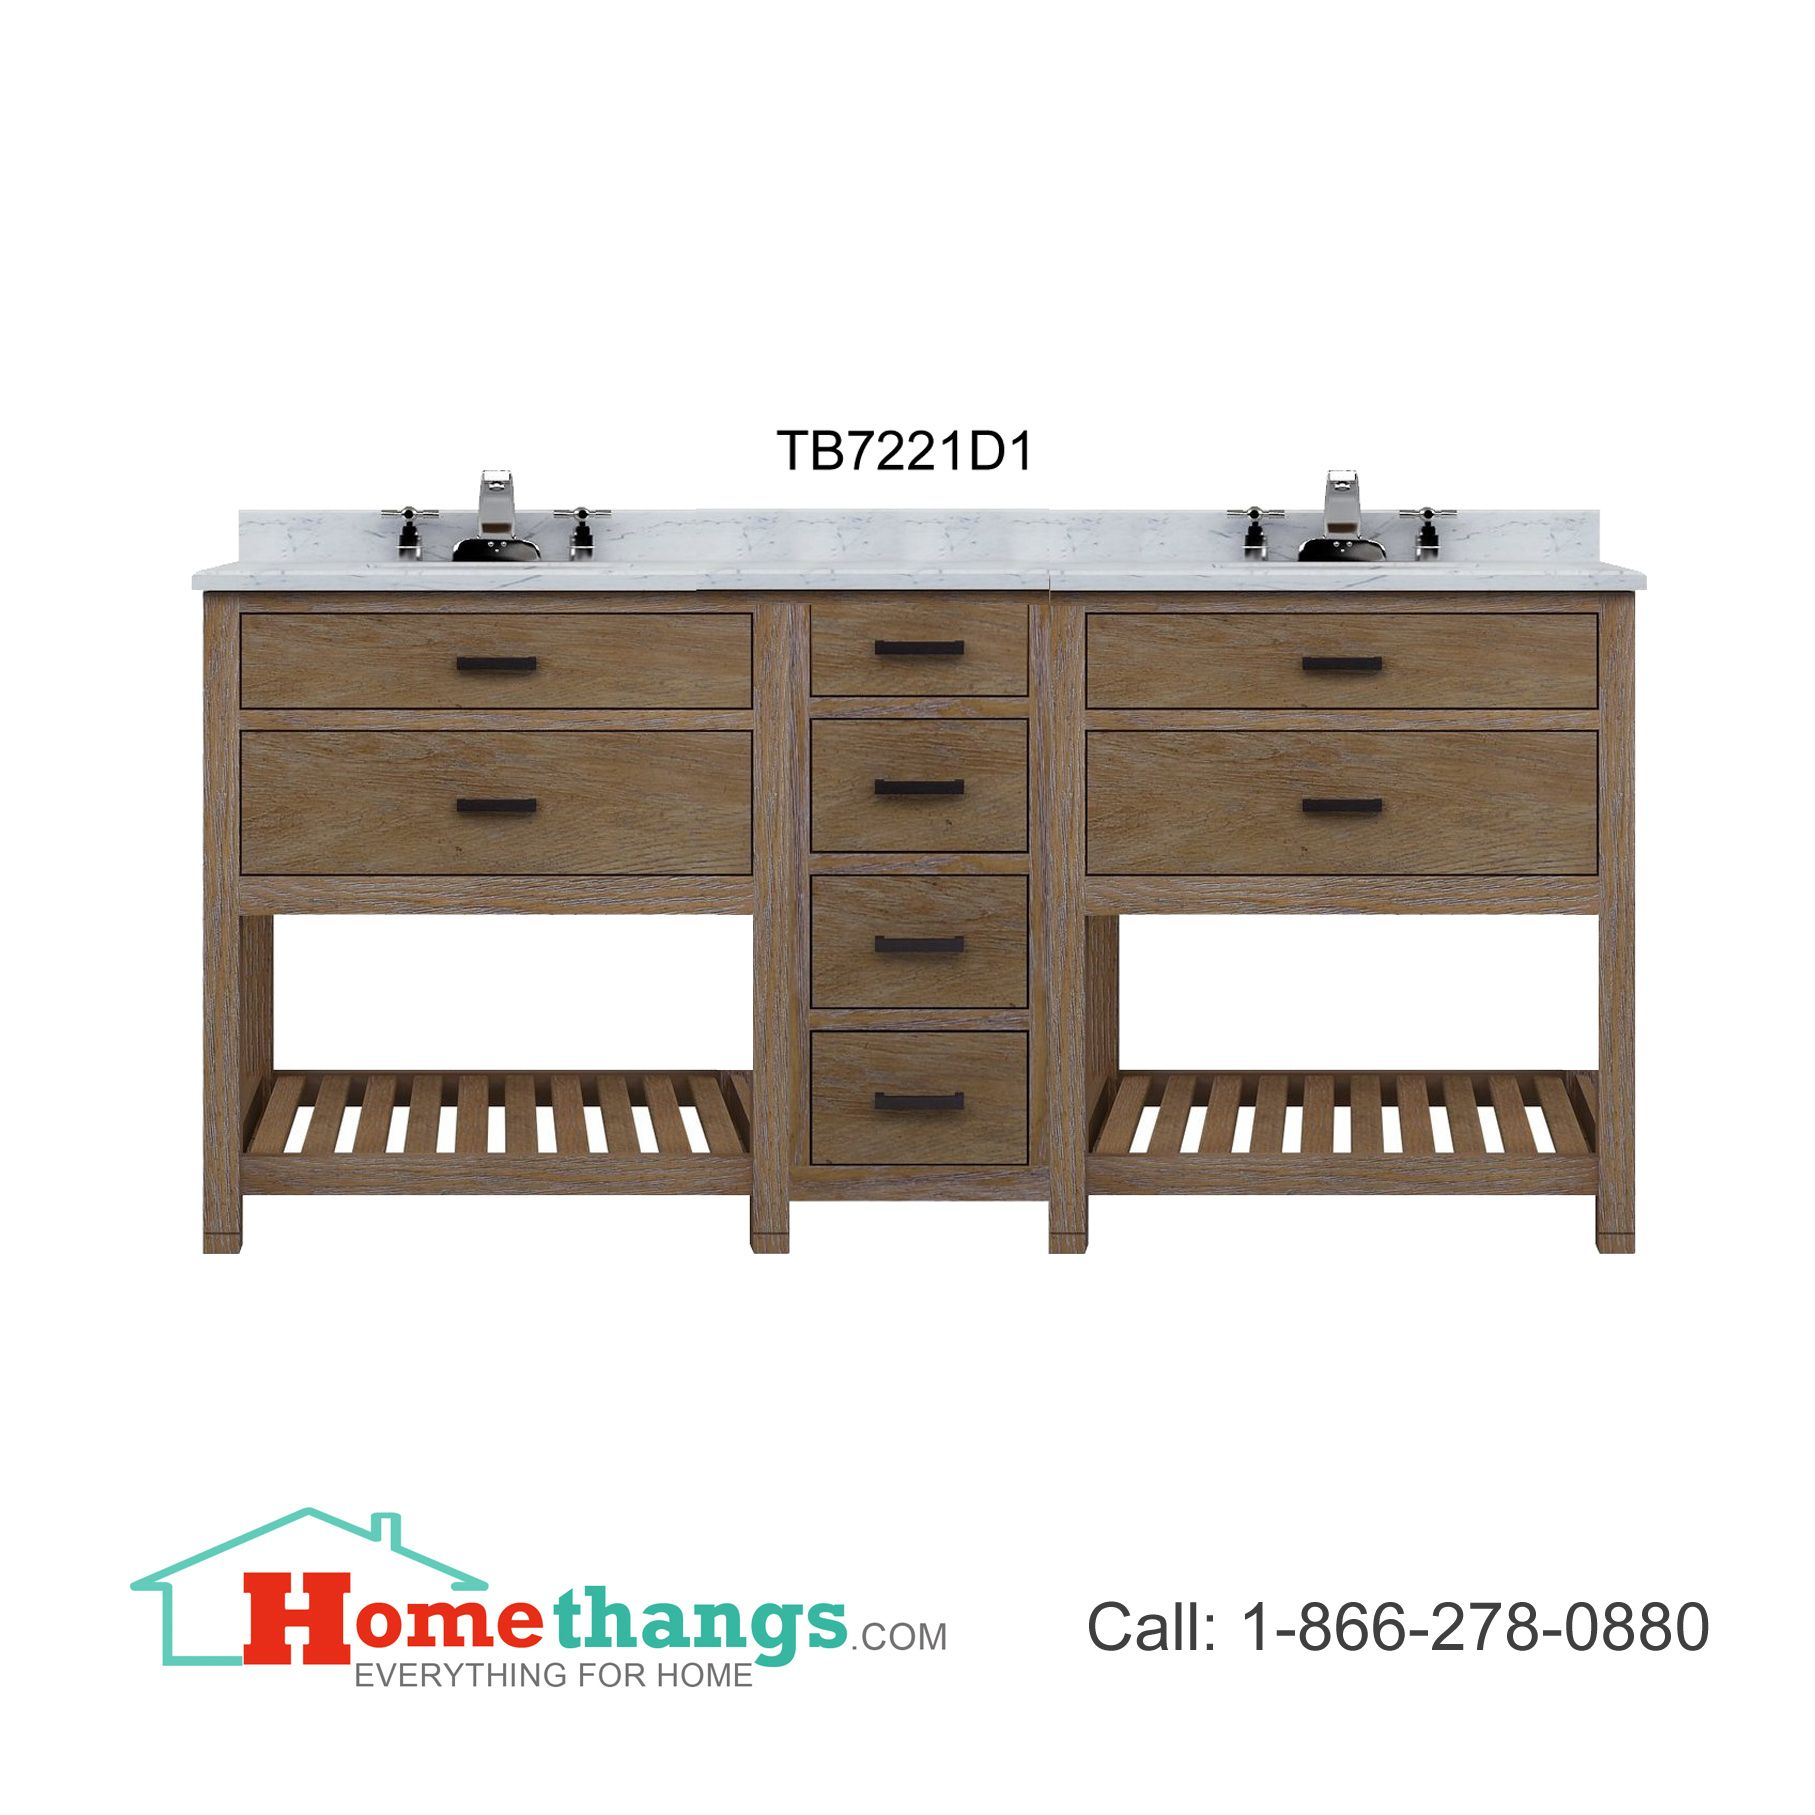 Sagehill designs toby 72 modular double bathroom vanity with drawers no countertop tb7221d1 - Double sink vanity countertop ideas ...